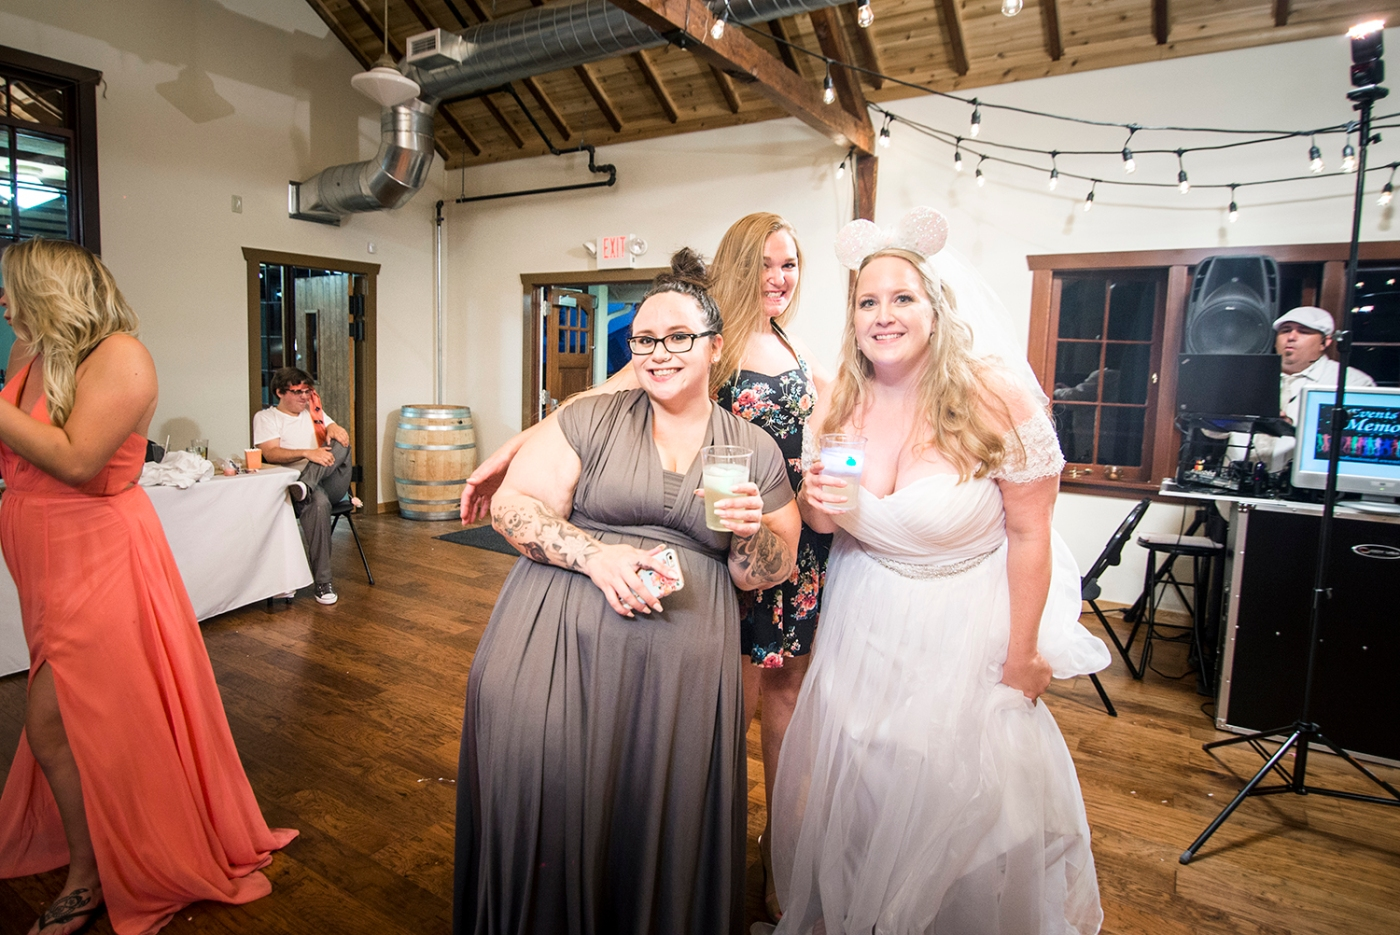 Jane_S_Seattle_photography_Kadie_and_Steve_2016_Des_Moines_Marina_Wedding_DSC_2773